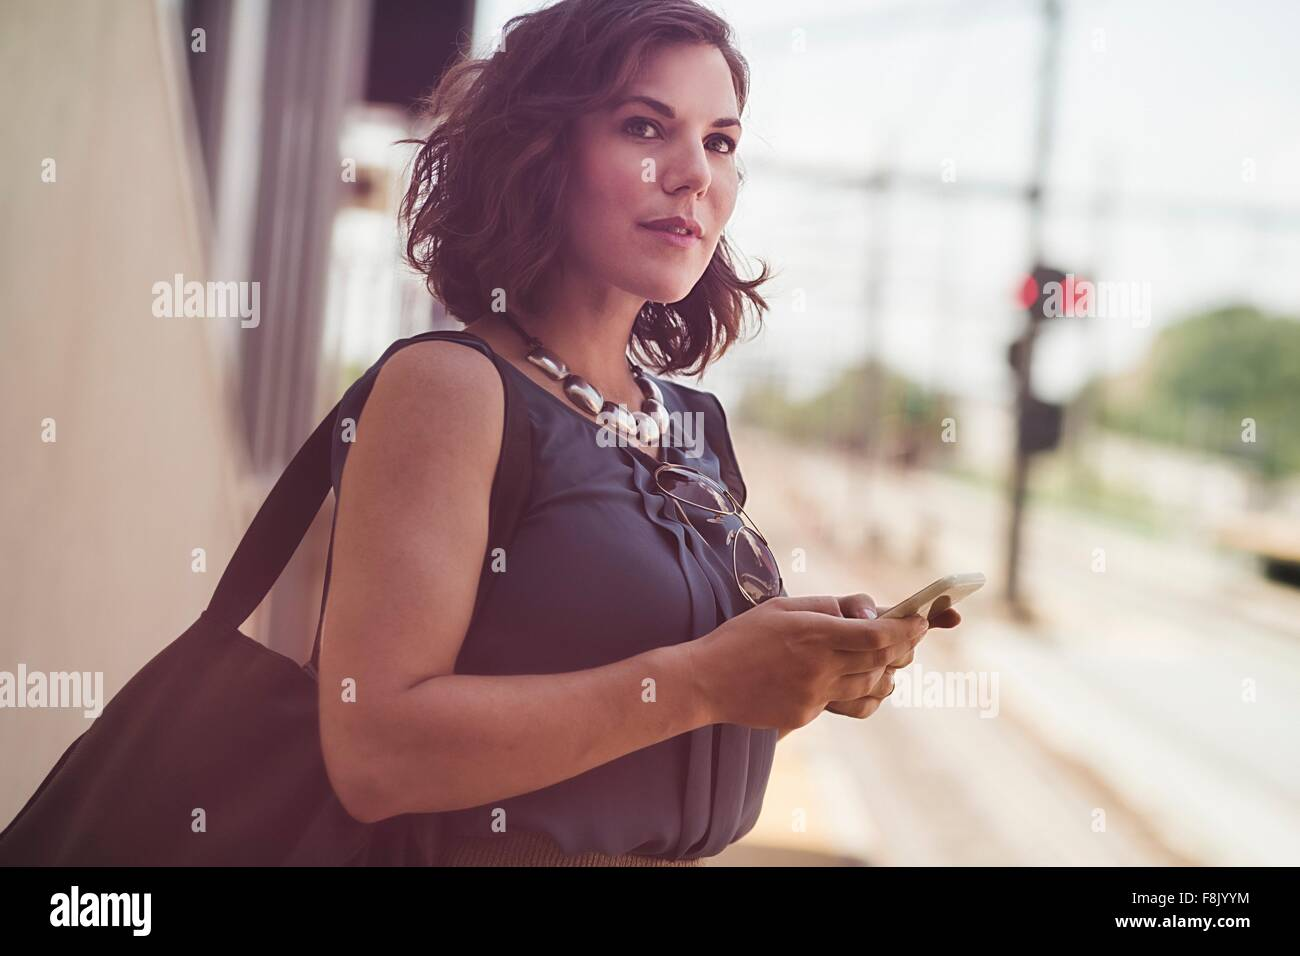 Mid adult woman waiting at train station, holding smartphone - Stock Image